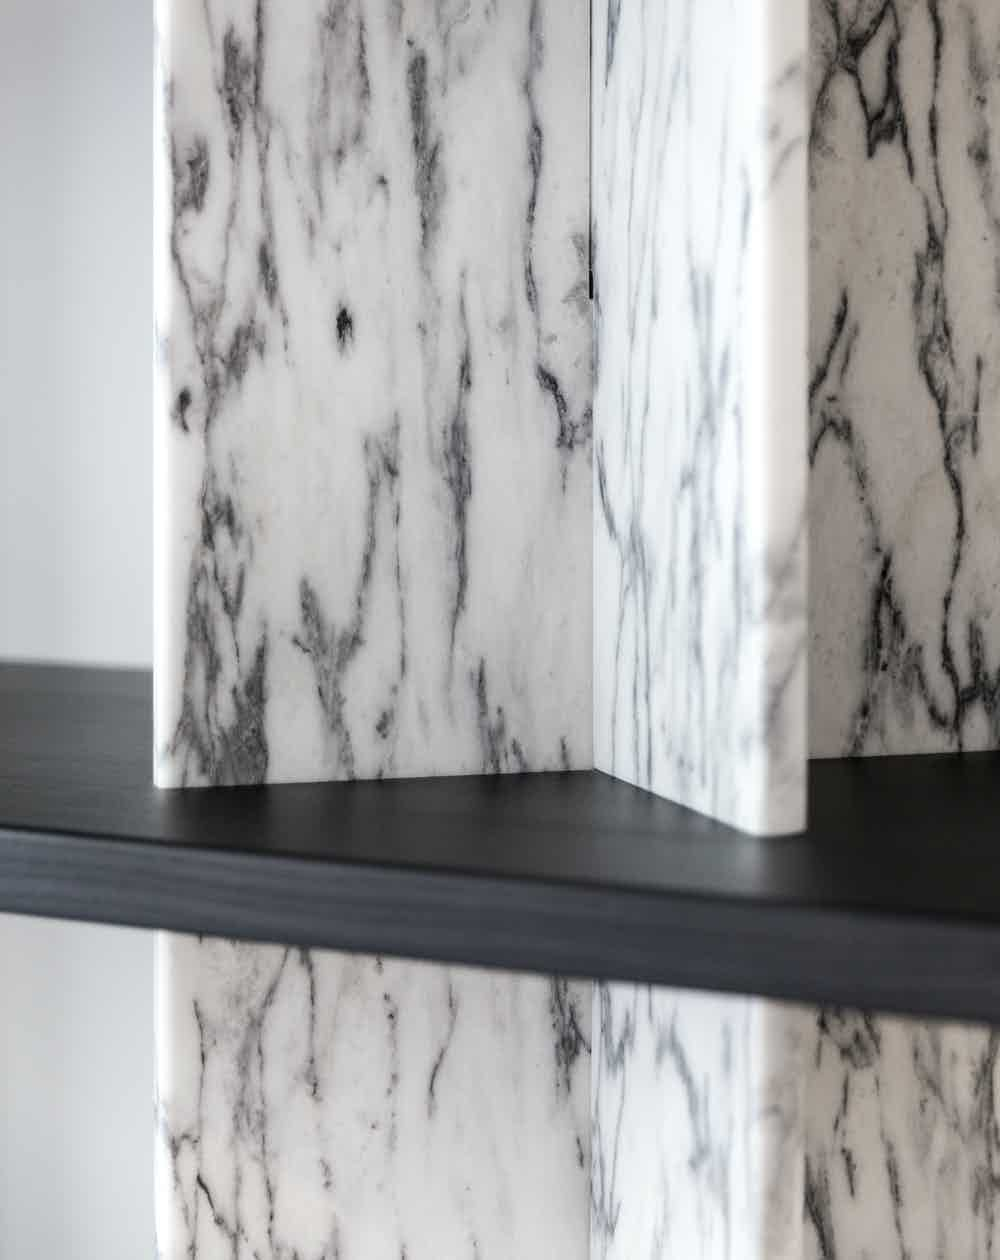 La chance furniture monument shelving system marble black haute living